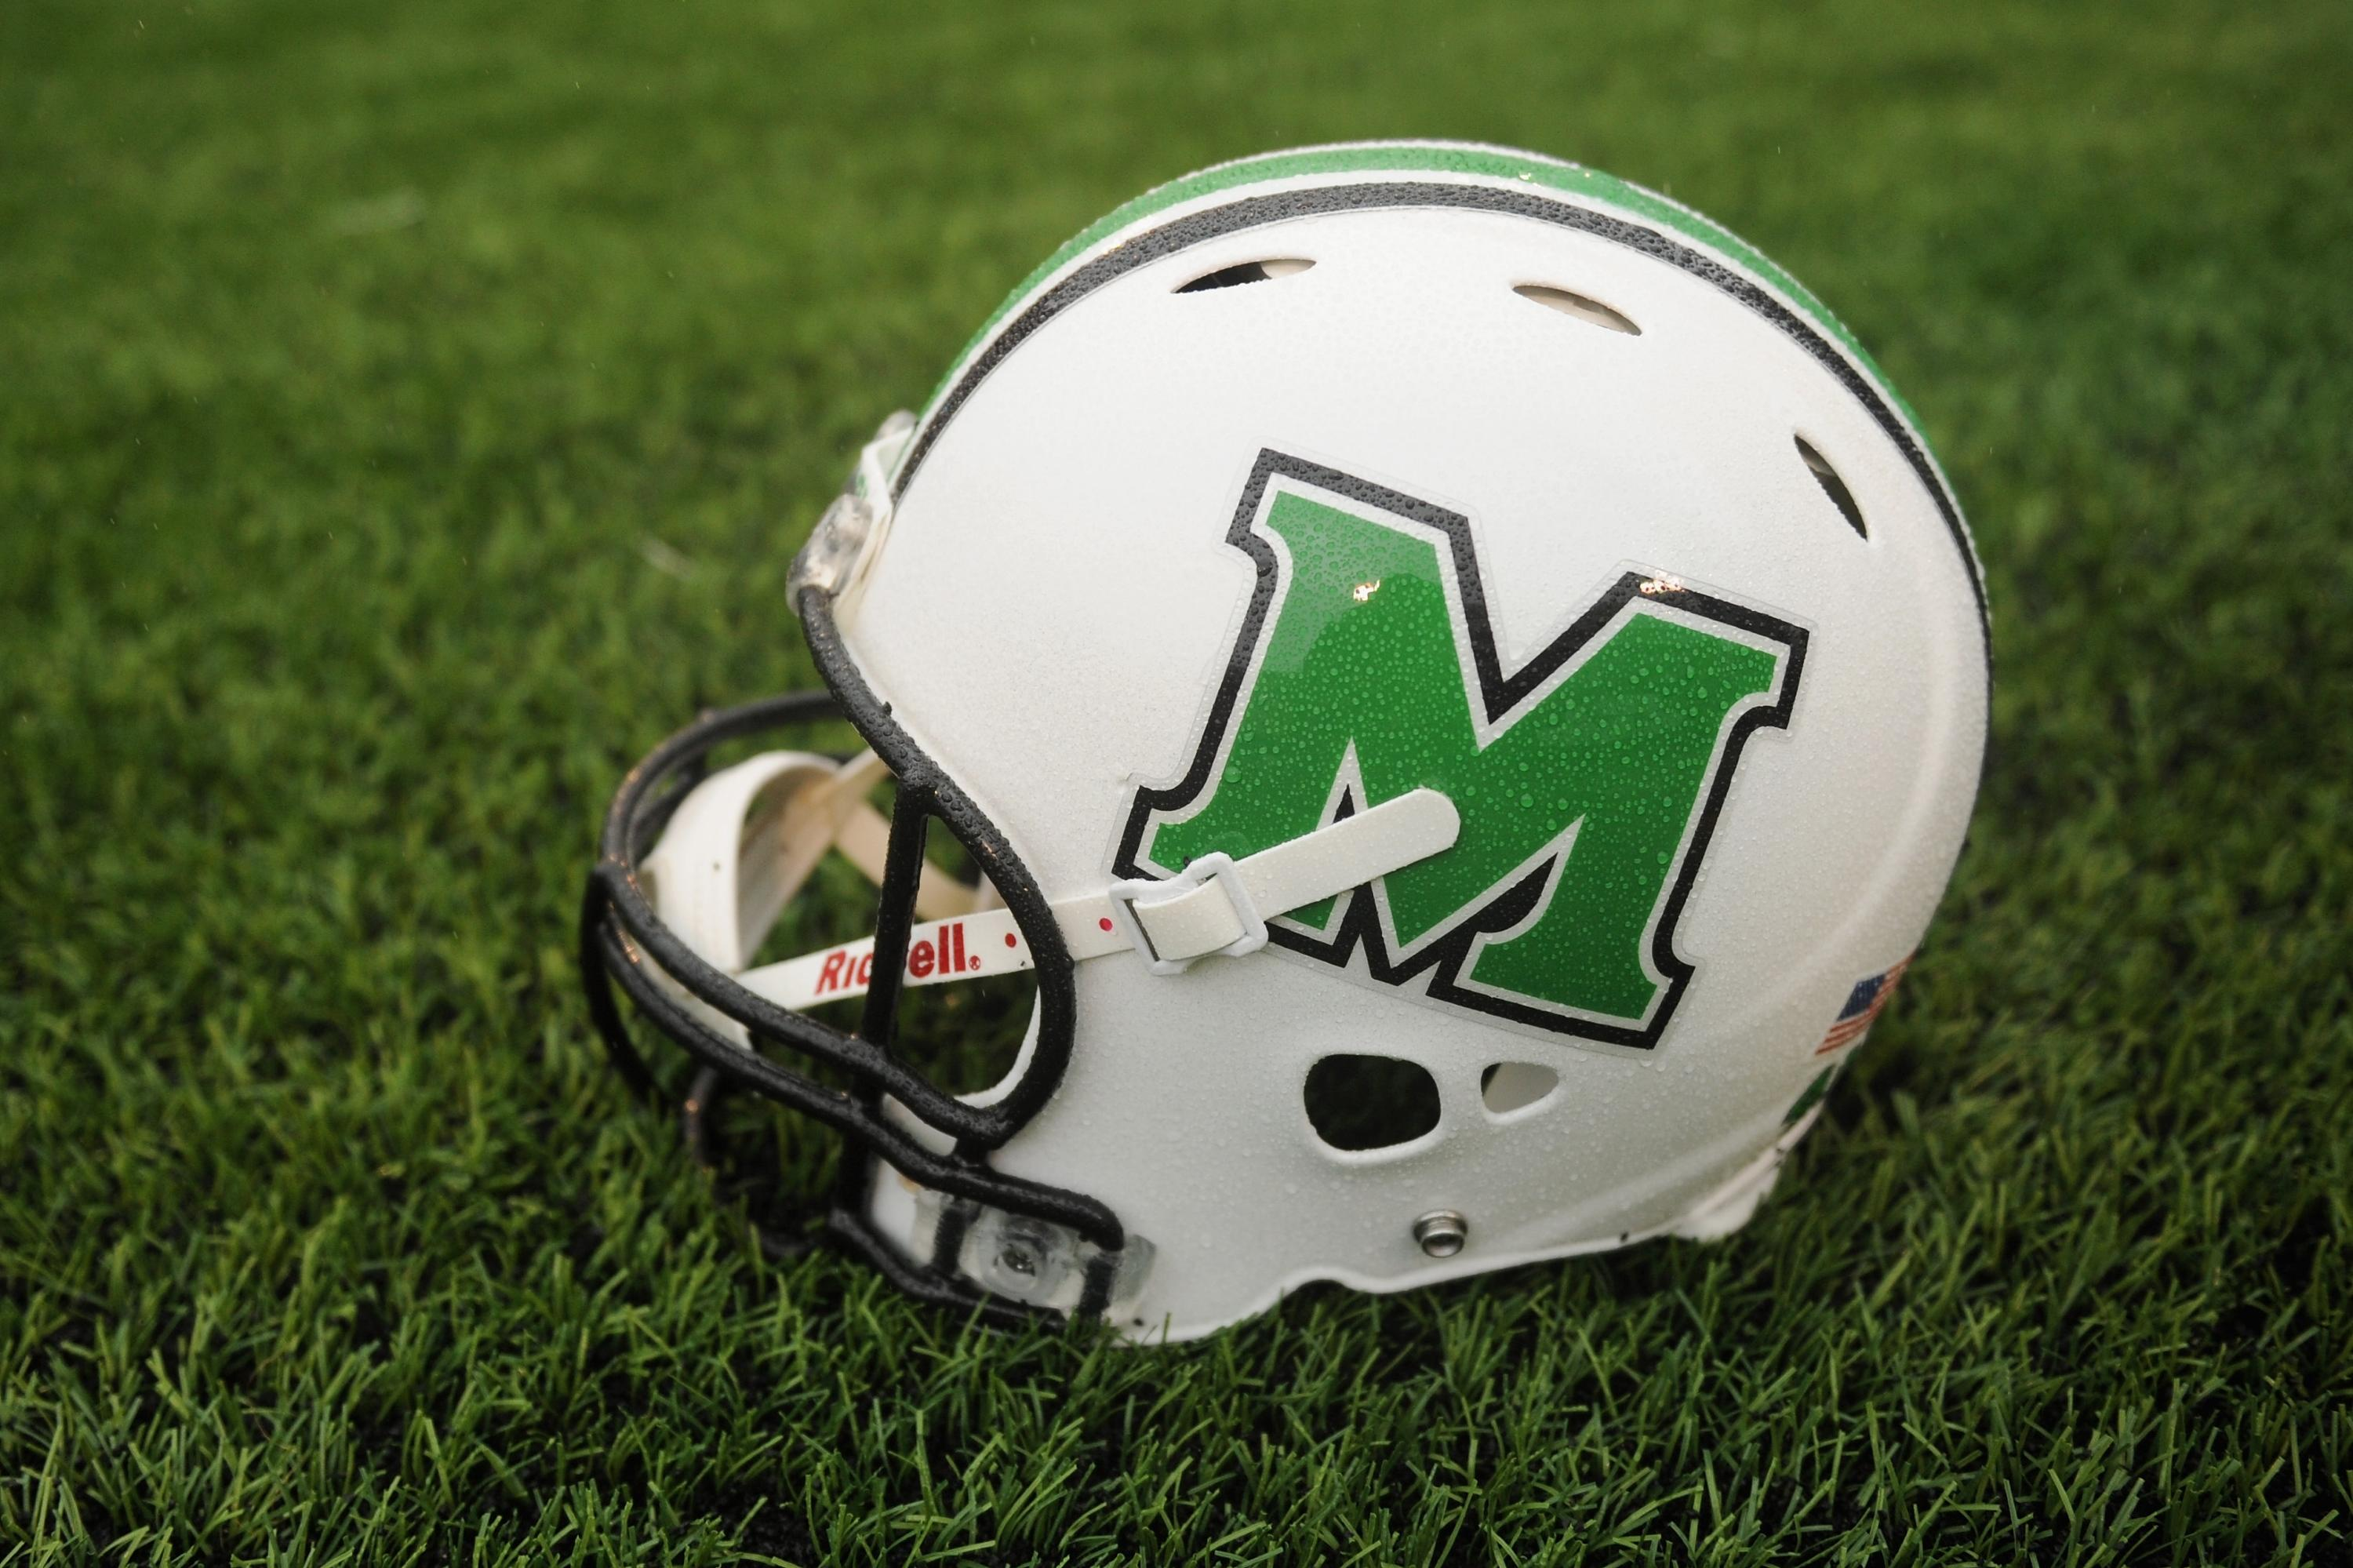 Marshall DL Jarquez Samuel swan dives into end zone for TD (Video)